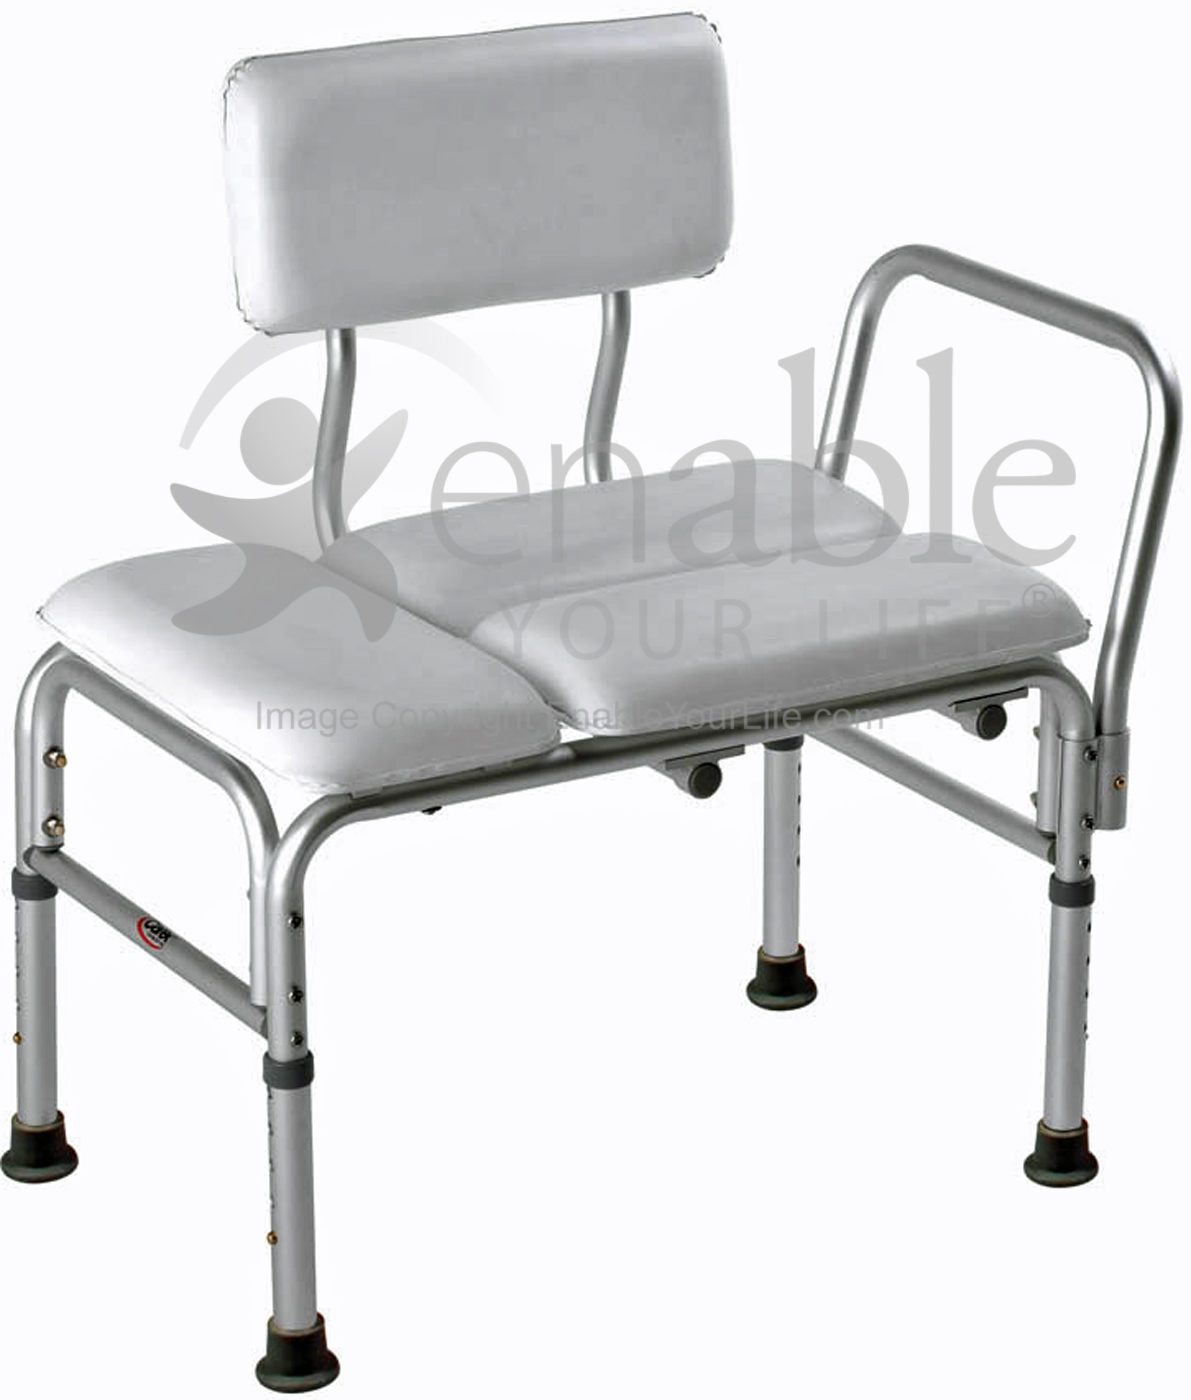 carex shower chair gray side deluxe vinyl padded transfer bench with full seat